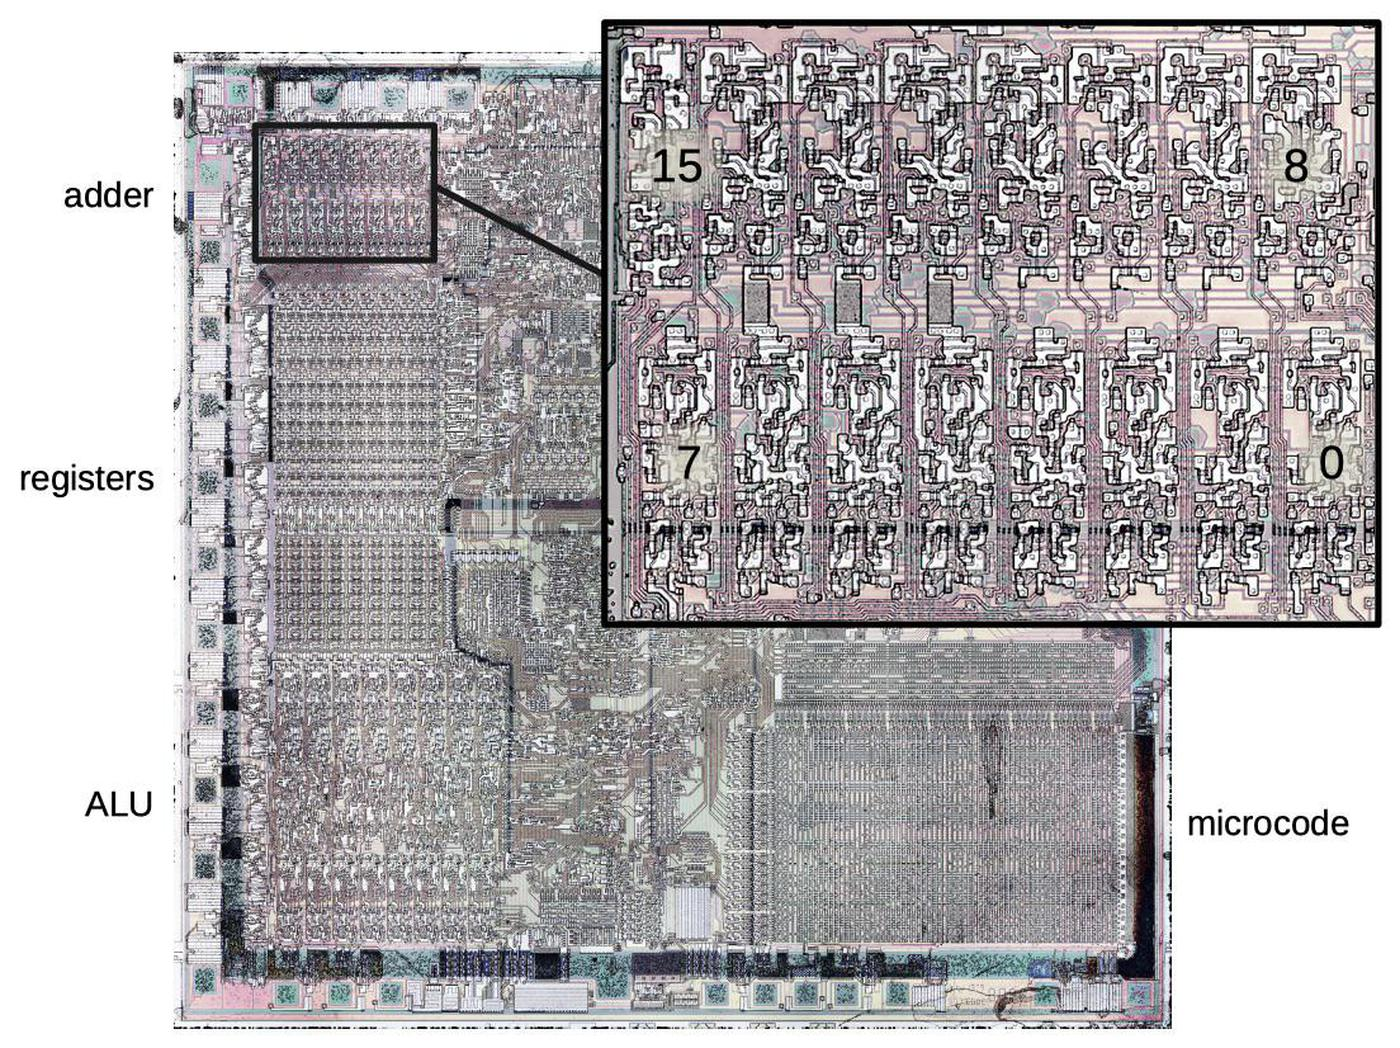 Die photo of the 8086 microprocessor, highlighting the 16-bit address adder.  The microcode ROM is in the lower right. The metal layer has been removed for this photo, revealing the silicon and polysilicon underneath. The colors are due to thin-film effects from partially-removed oxide layers.